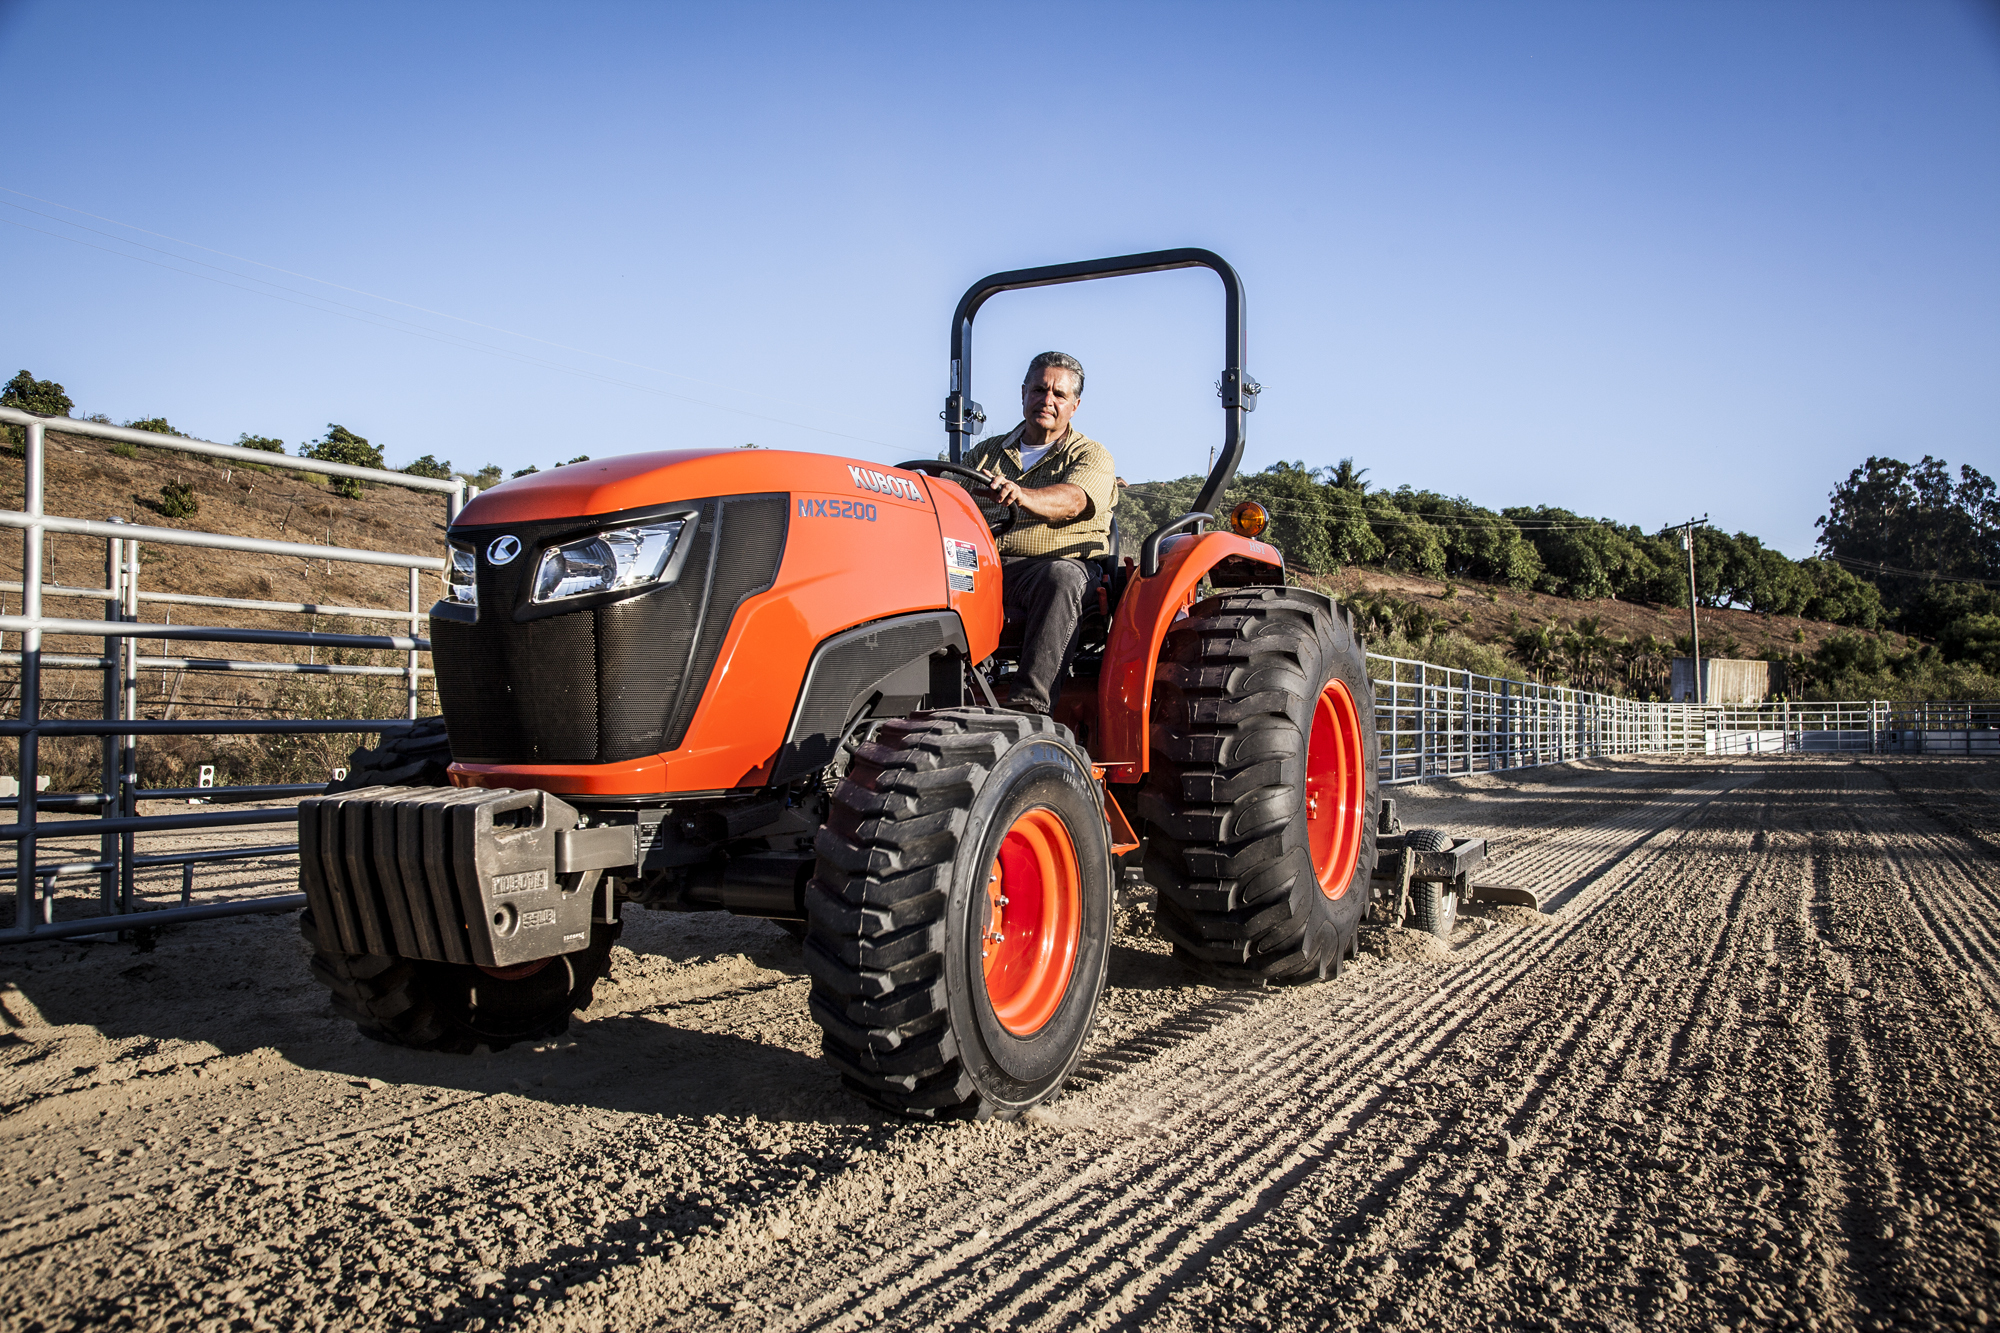 New Kubota Tractors : Kubota introduces two new models to its mx series diesel